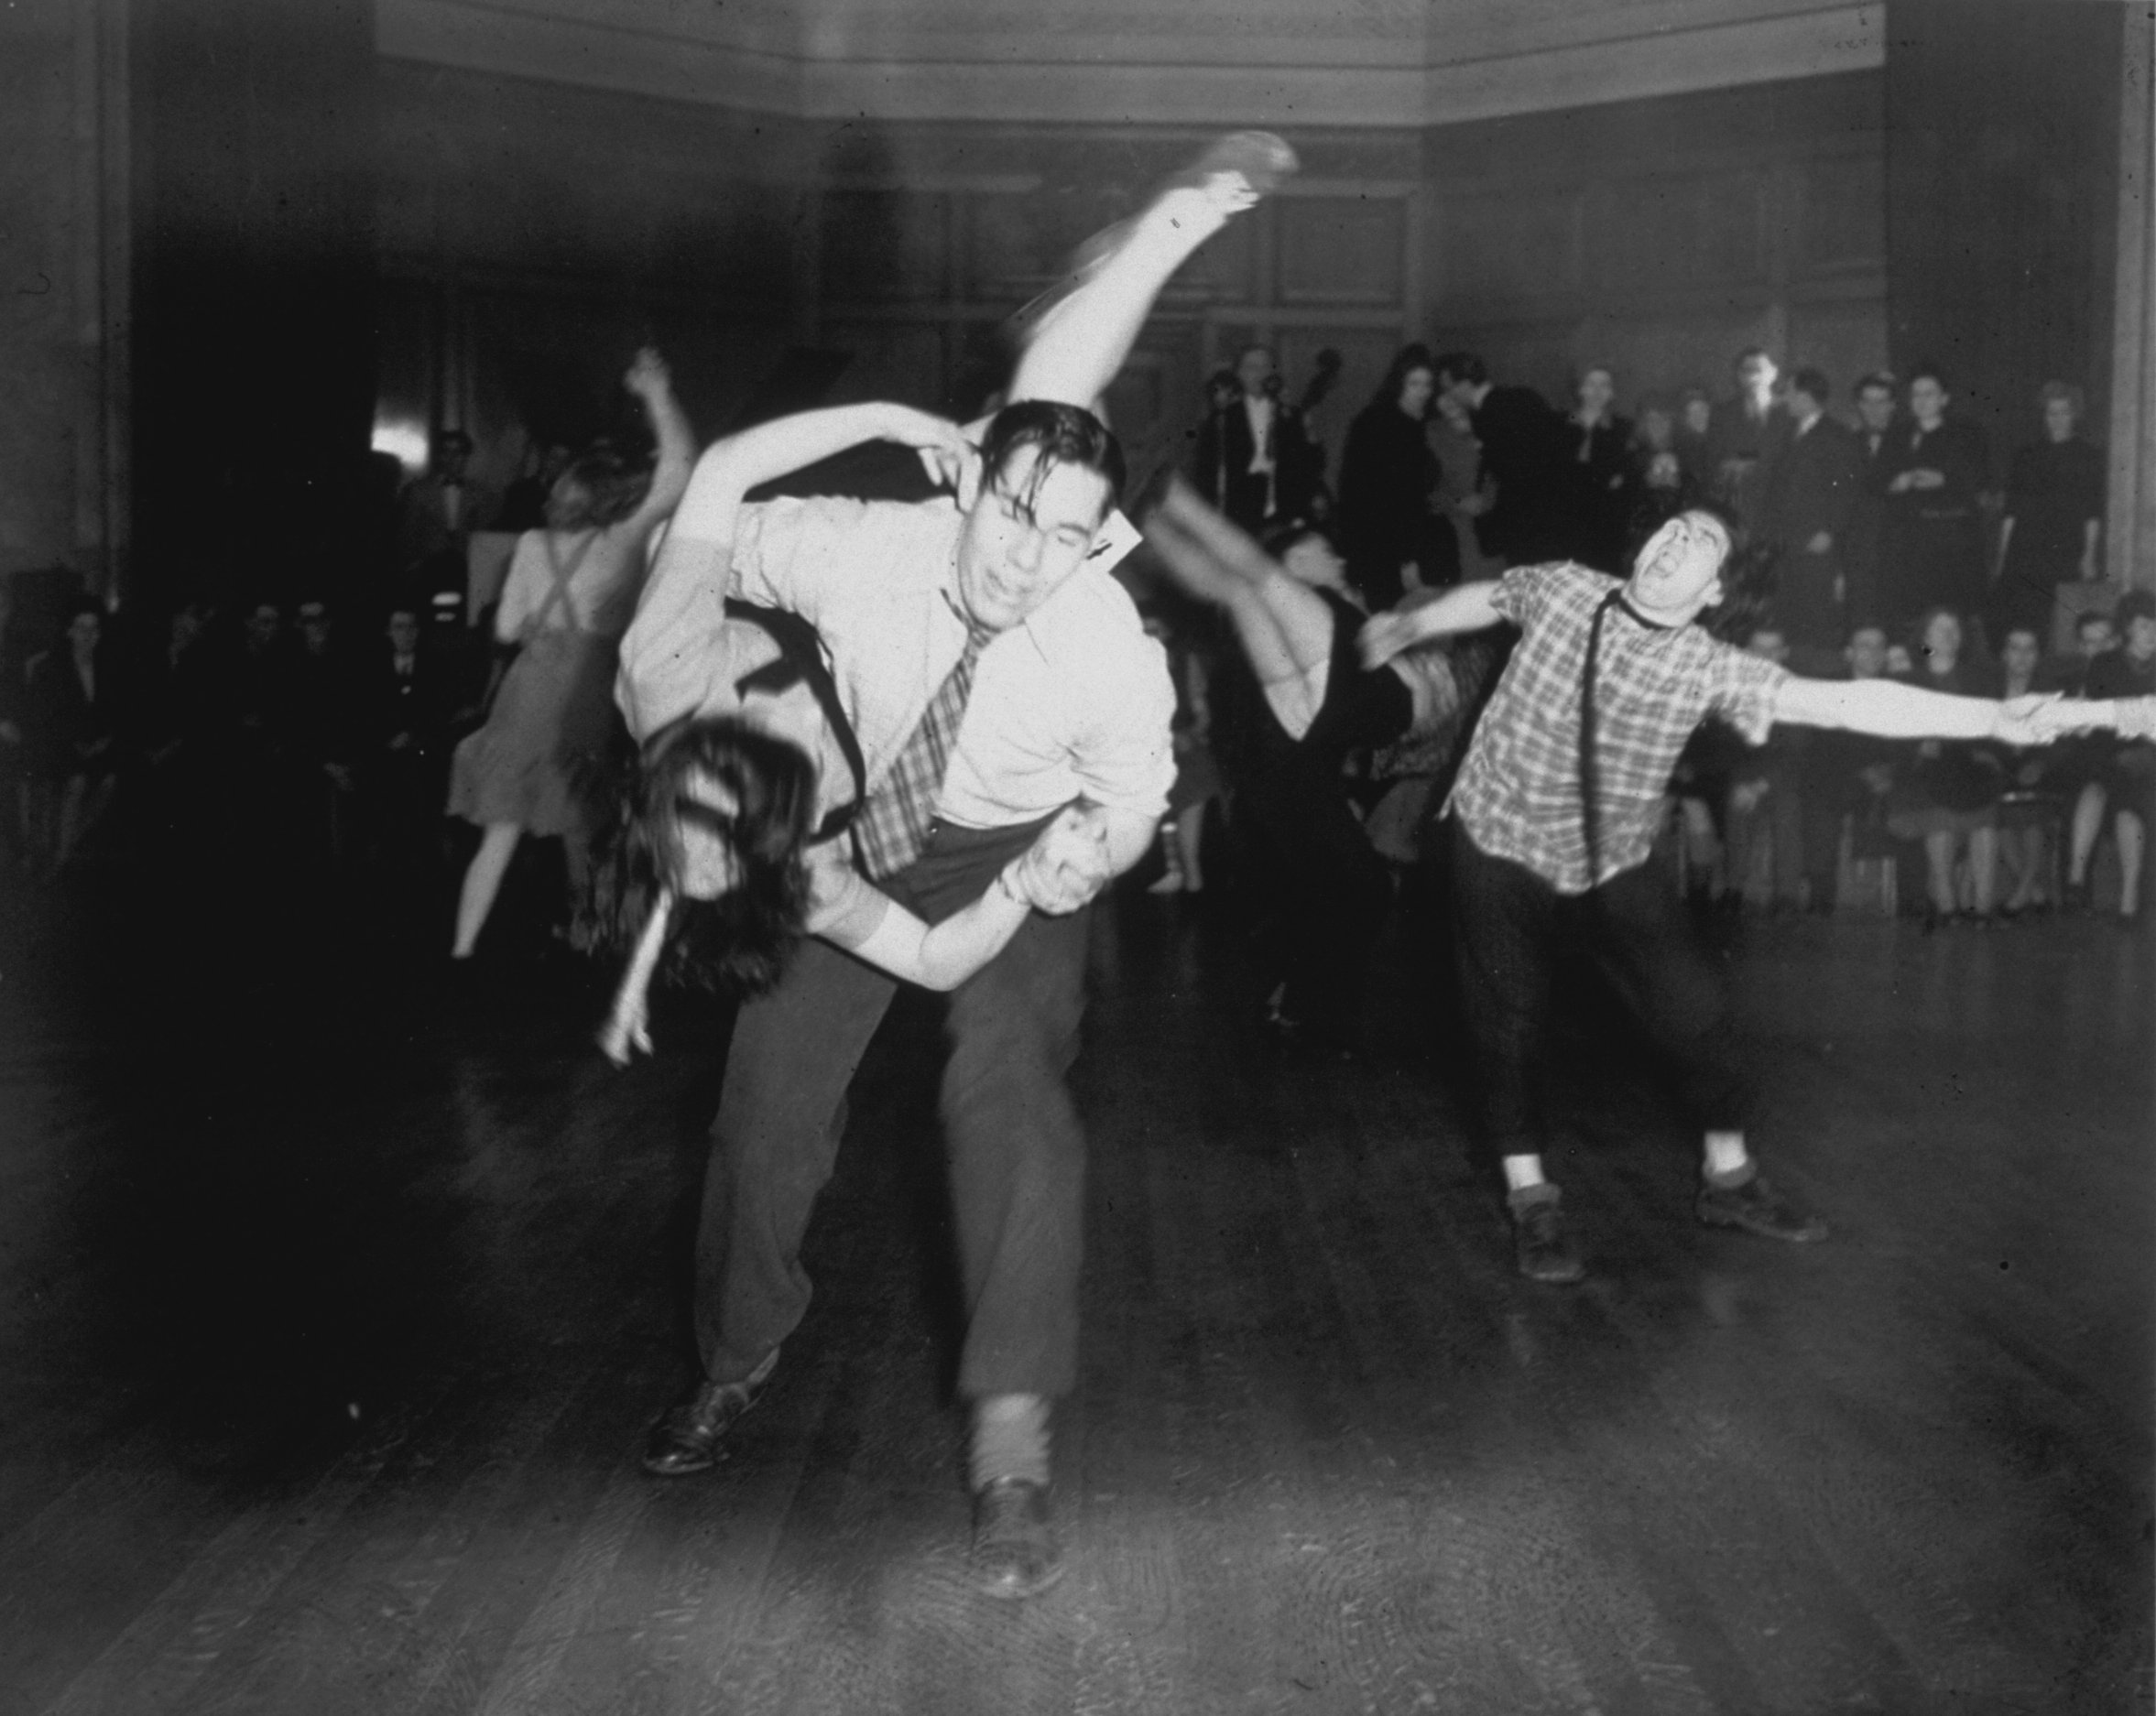 A typical 1940s nightclub scene, Baywater, UK. 1943 | Photo: Getty Images